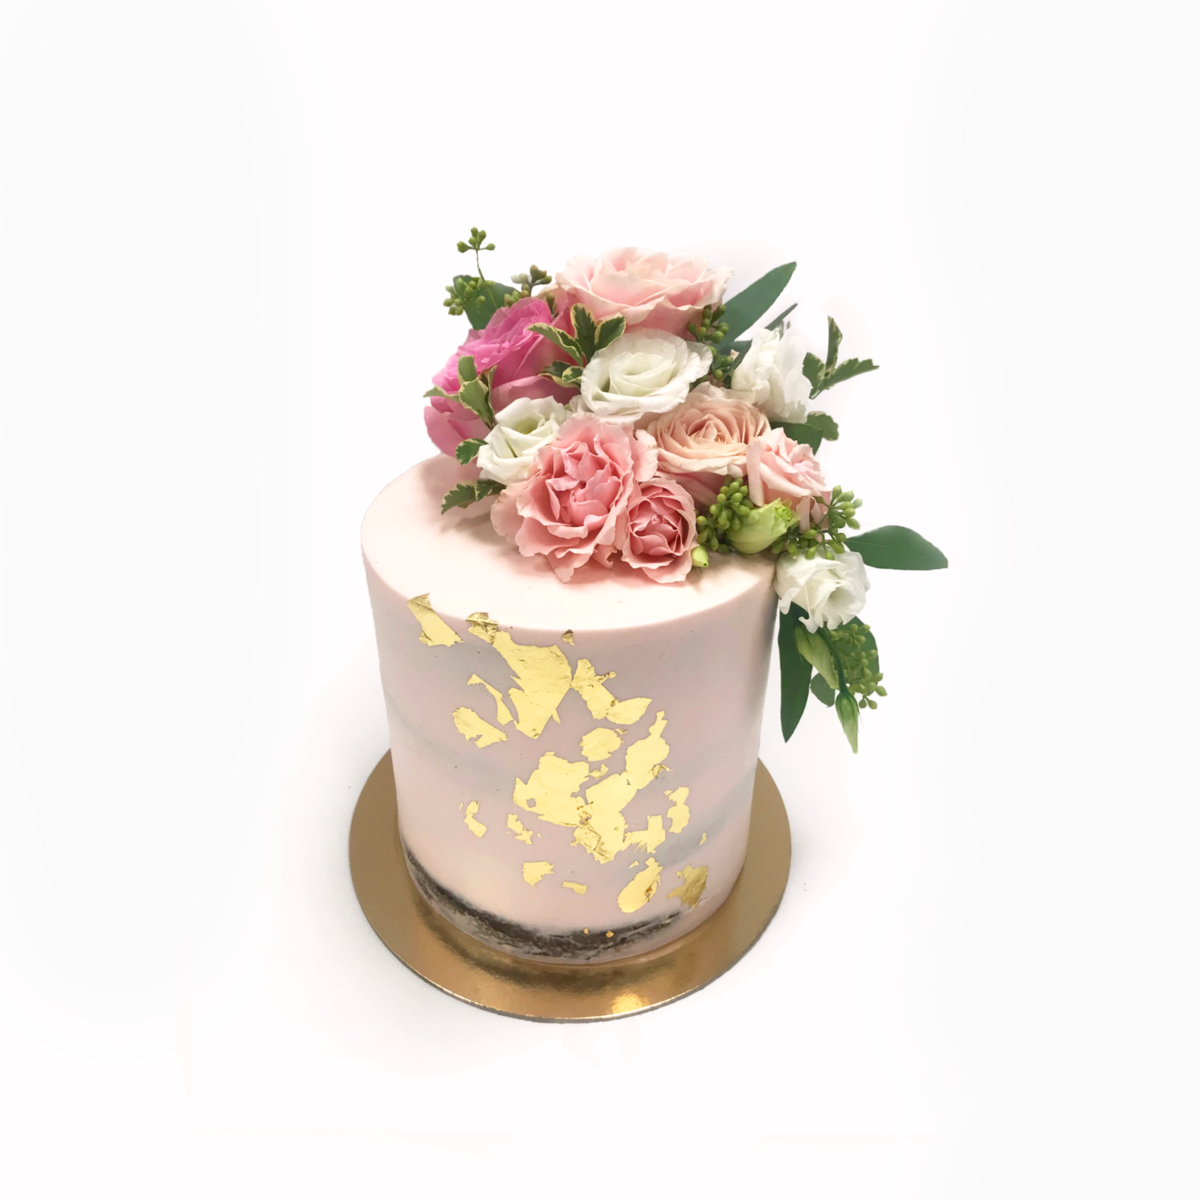 Whippt desserts - barely blush semi-naked cake with gold foil Feb 2019